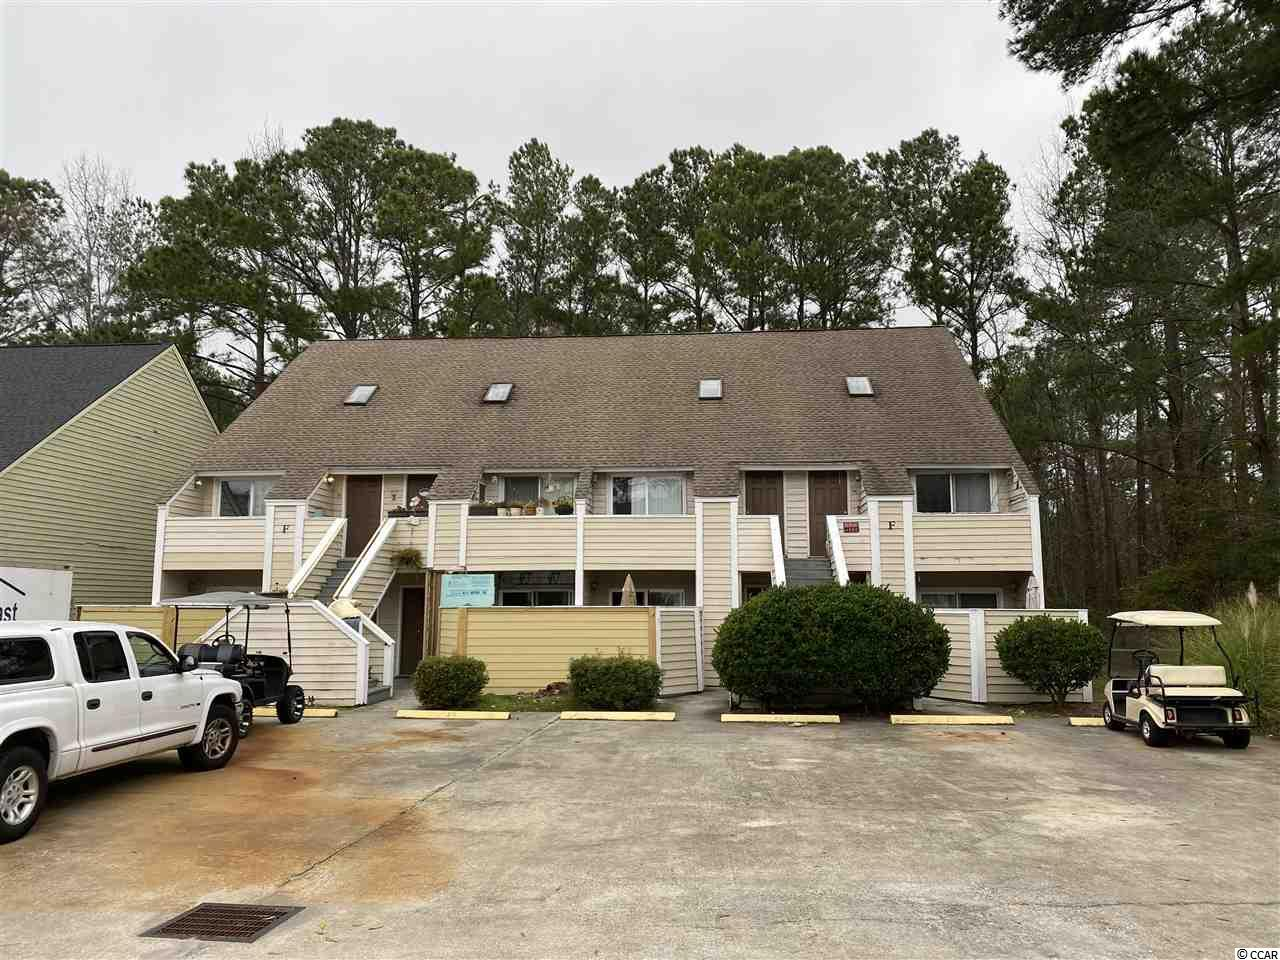 Located in Jamestown in the heart of Garden City. Short drive to the Garden City Pier and Sam's Corner. This condo is on the 2nd Floor and is used as an annual rental. The condo can be used for vacation or permanent residence. Close to Walgreen's and Kroger. Close to Walmart and restaurants. Just a short drive to the Myrtle Beach Airport and Market Commons.